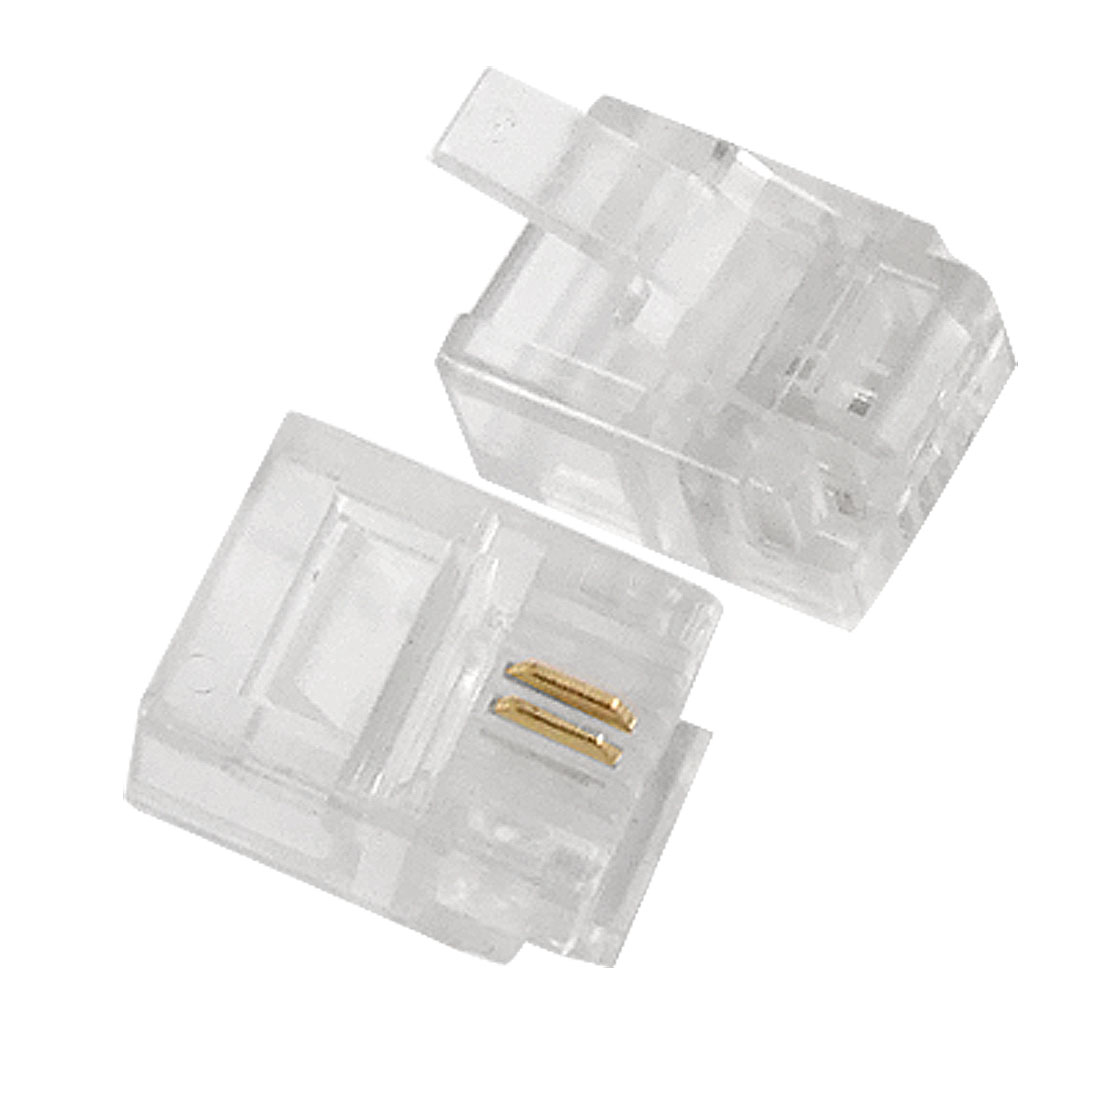 4 Pcs 6P2C 2 Pole RJ11 Modular Plug Telephone Connector Clear